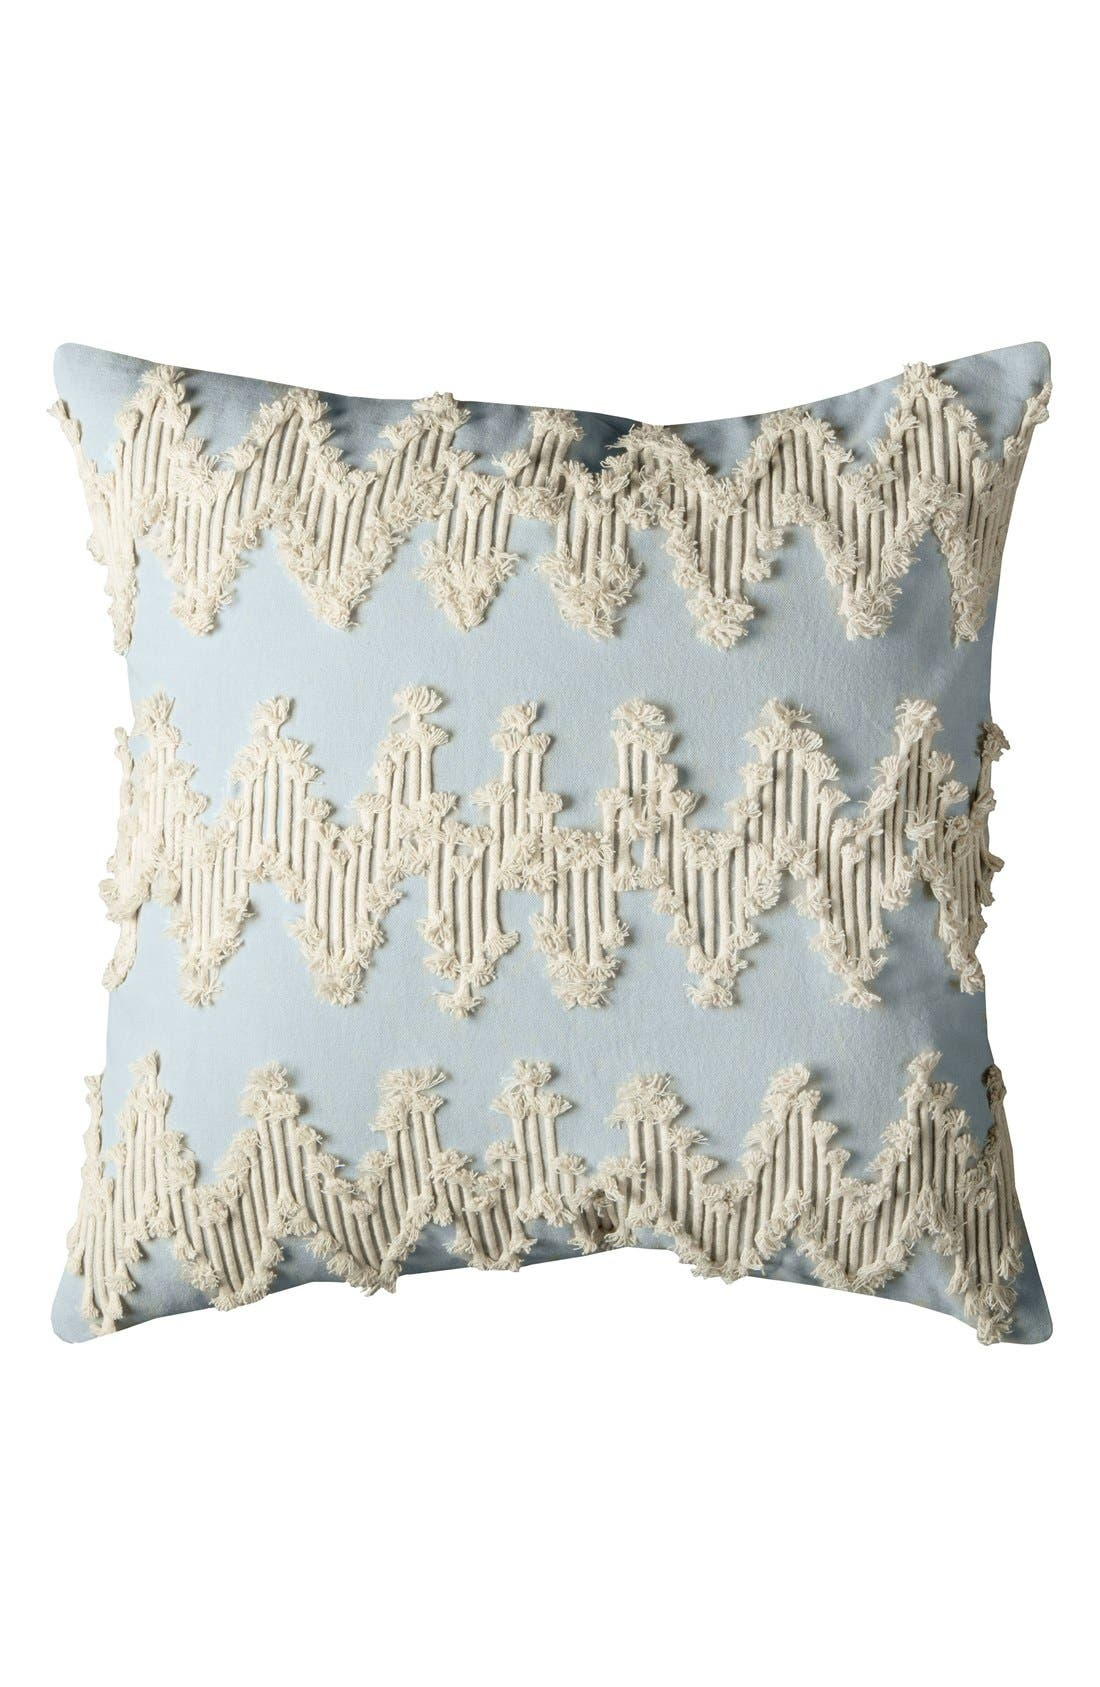 Embroidered Chevron Pillow,                         Main,                         color, Blue/ Natural